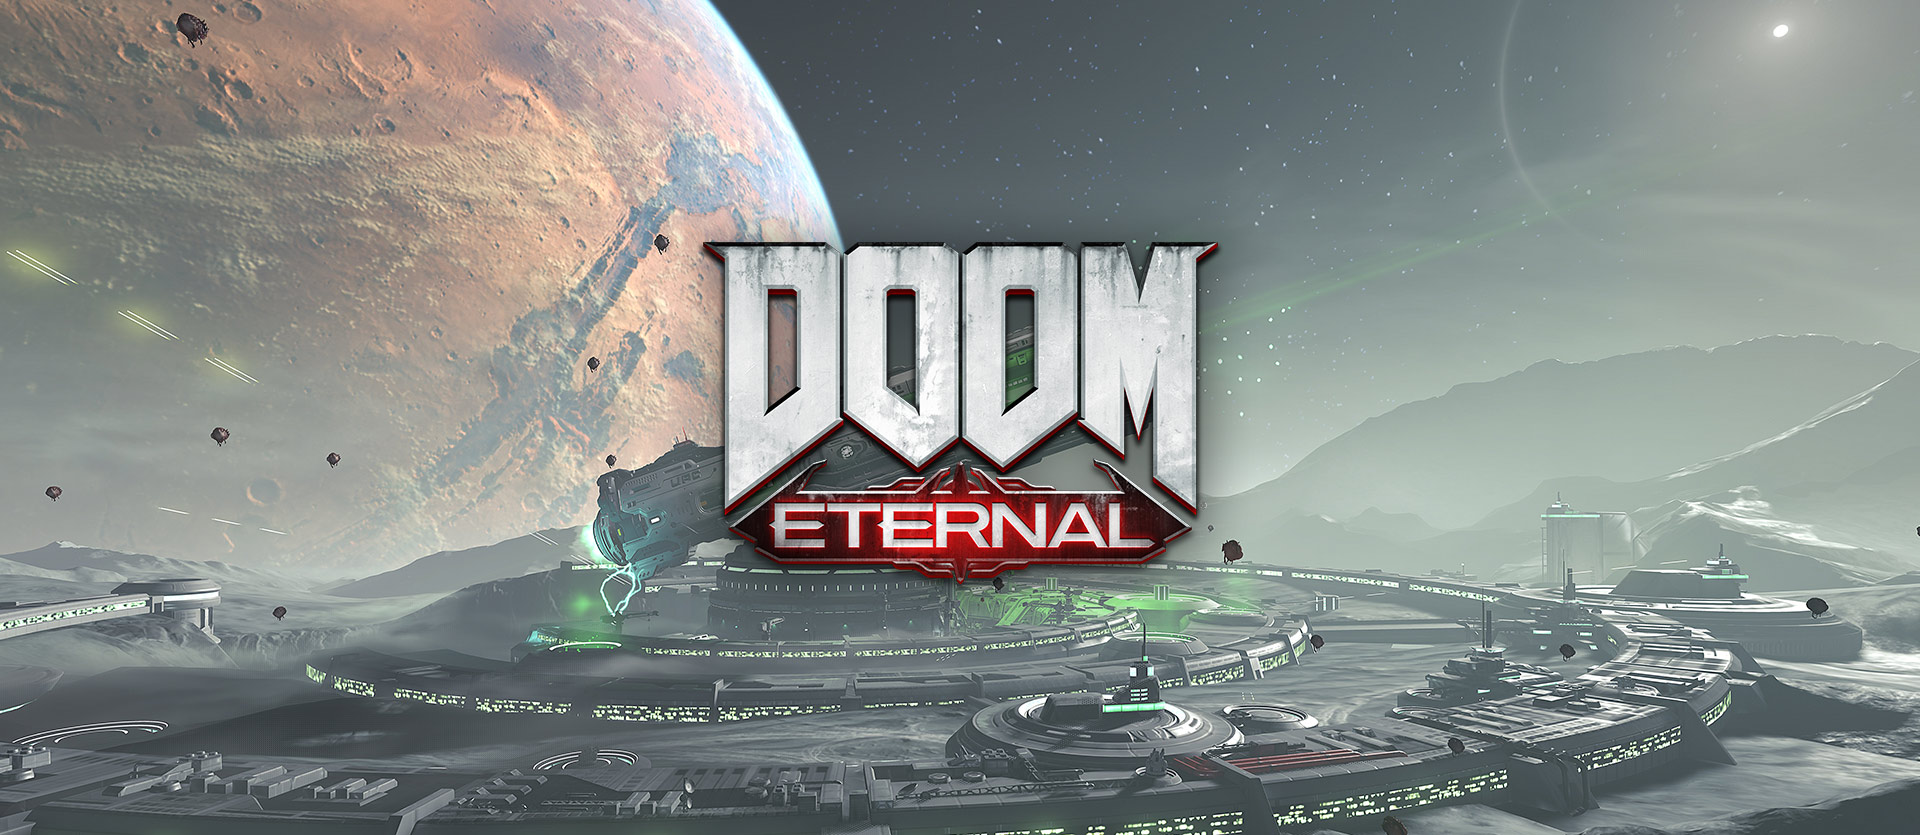 DOOM Eternal, View of a massive gun called BFG 10,000 on the side of a planet